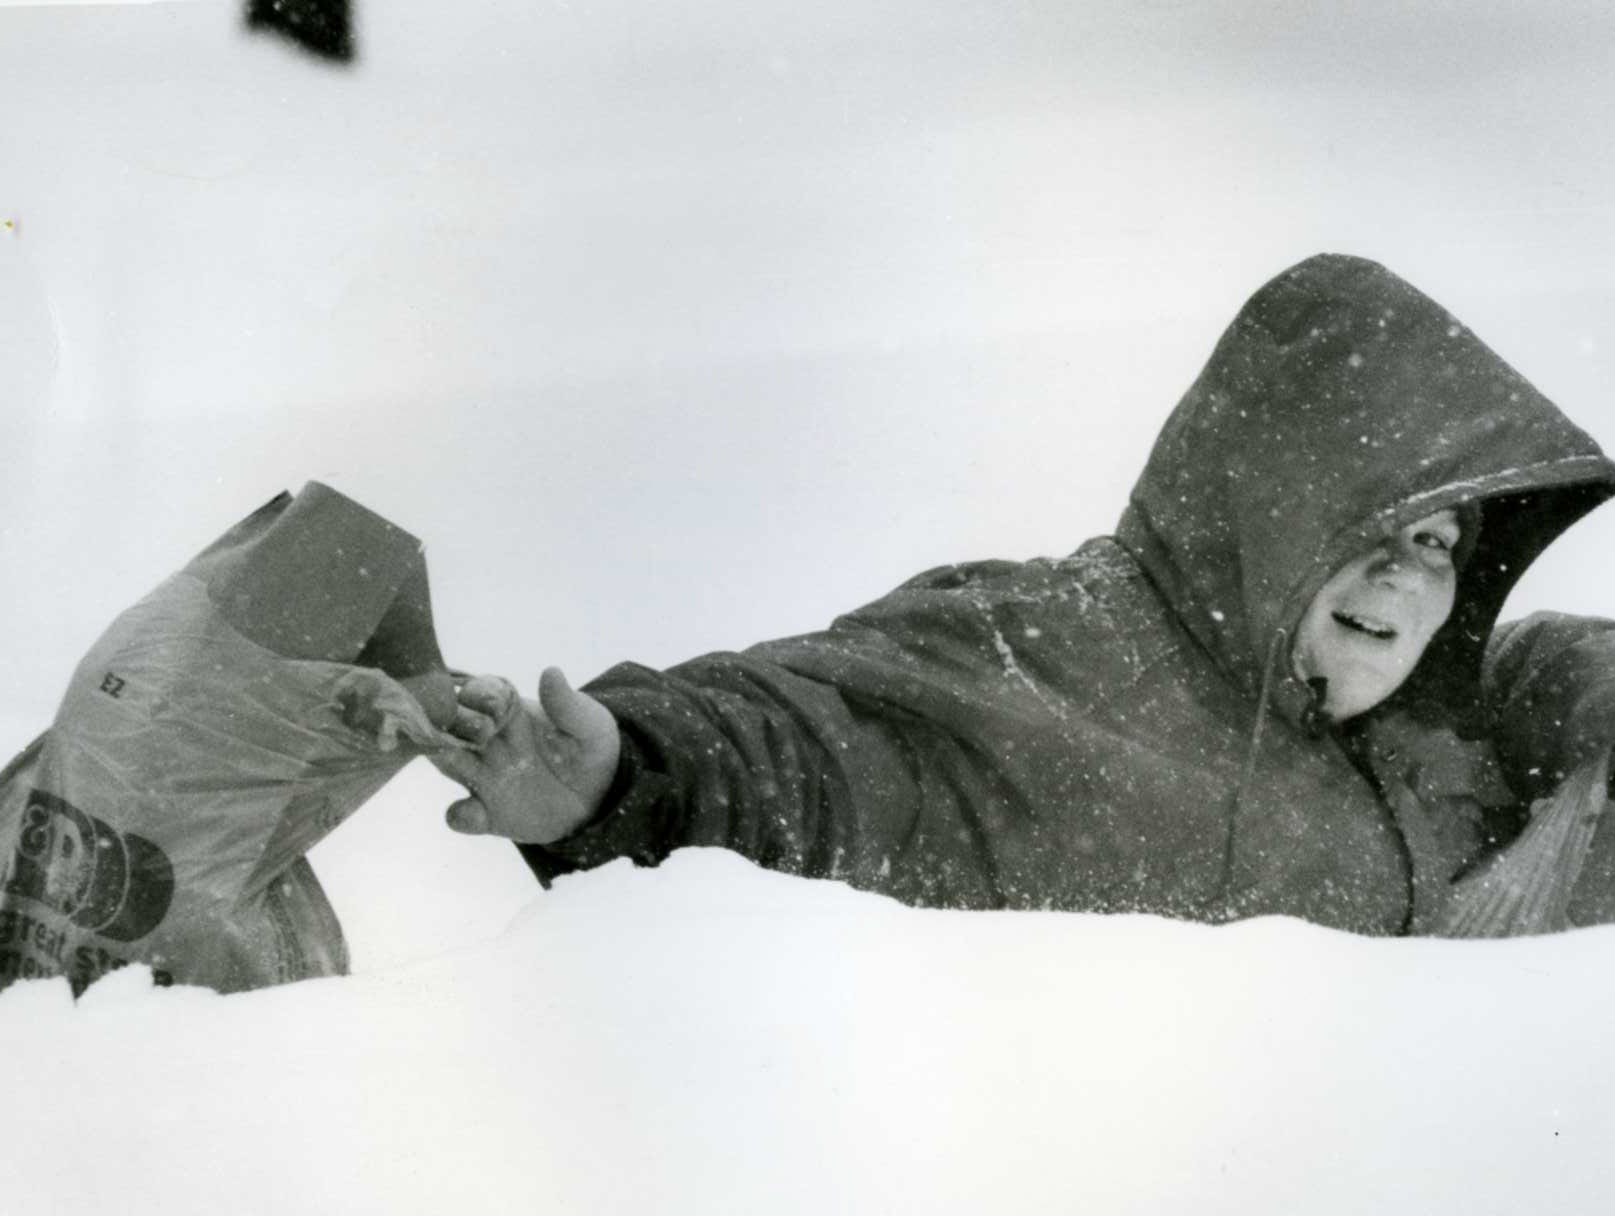 Feb. 11, 1994: Brian O'Donnell, 12, of New Milford, fell into a high drift of snow with shopping bags.